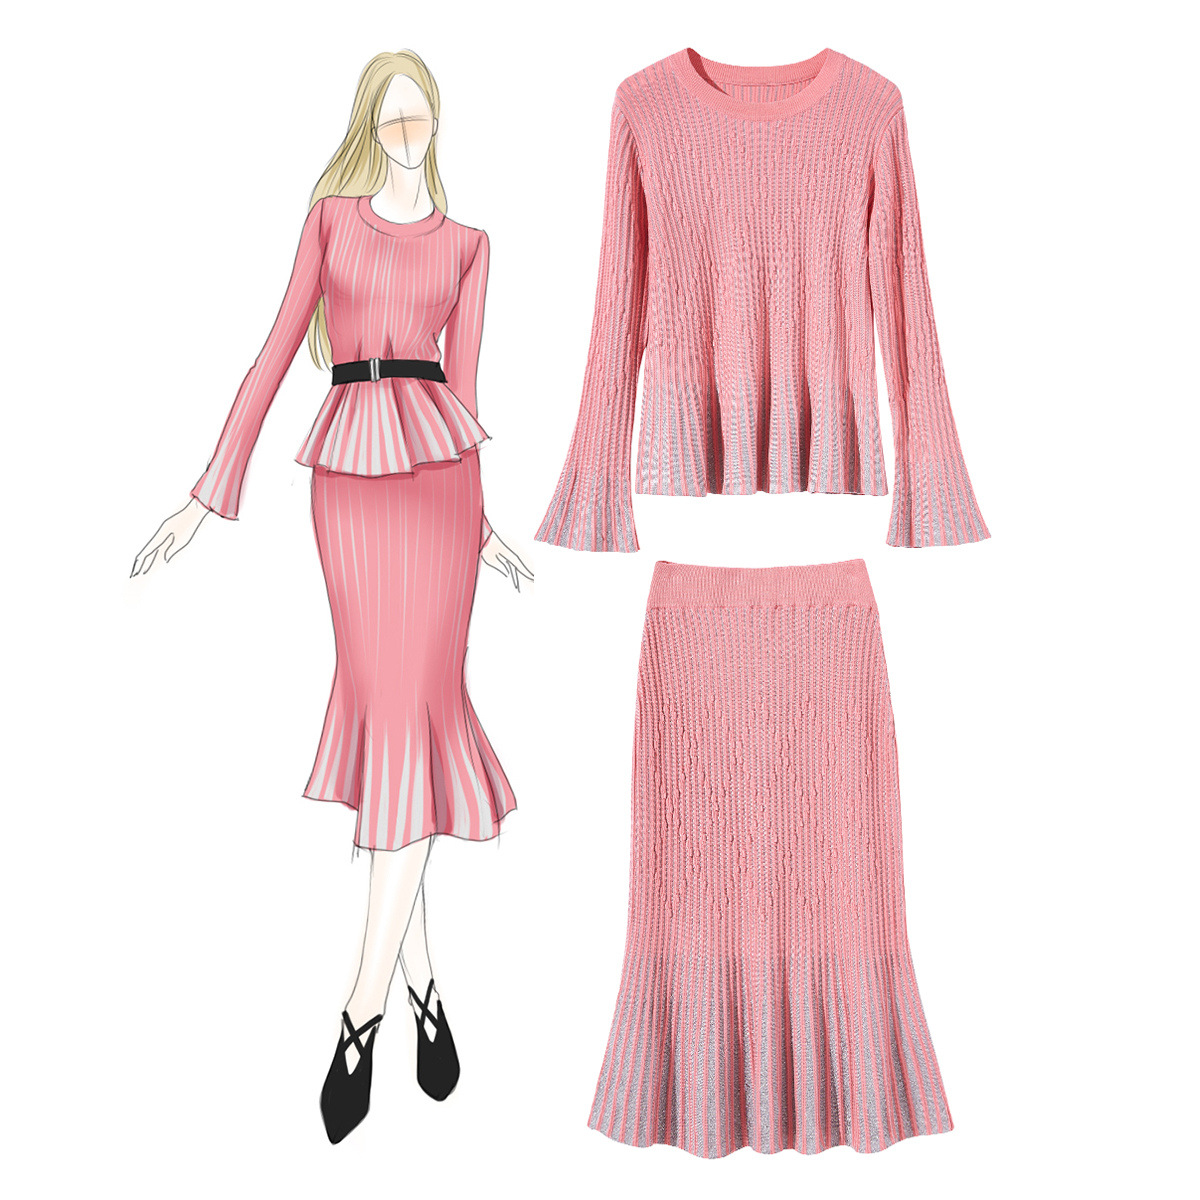 Knitting skirt sets 2 piece outfits for women spring 2019 new flare sleeve shirt jumper +slim hip fishtail skirt suit clothing